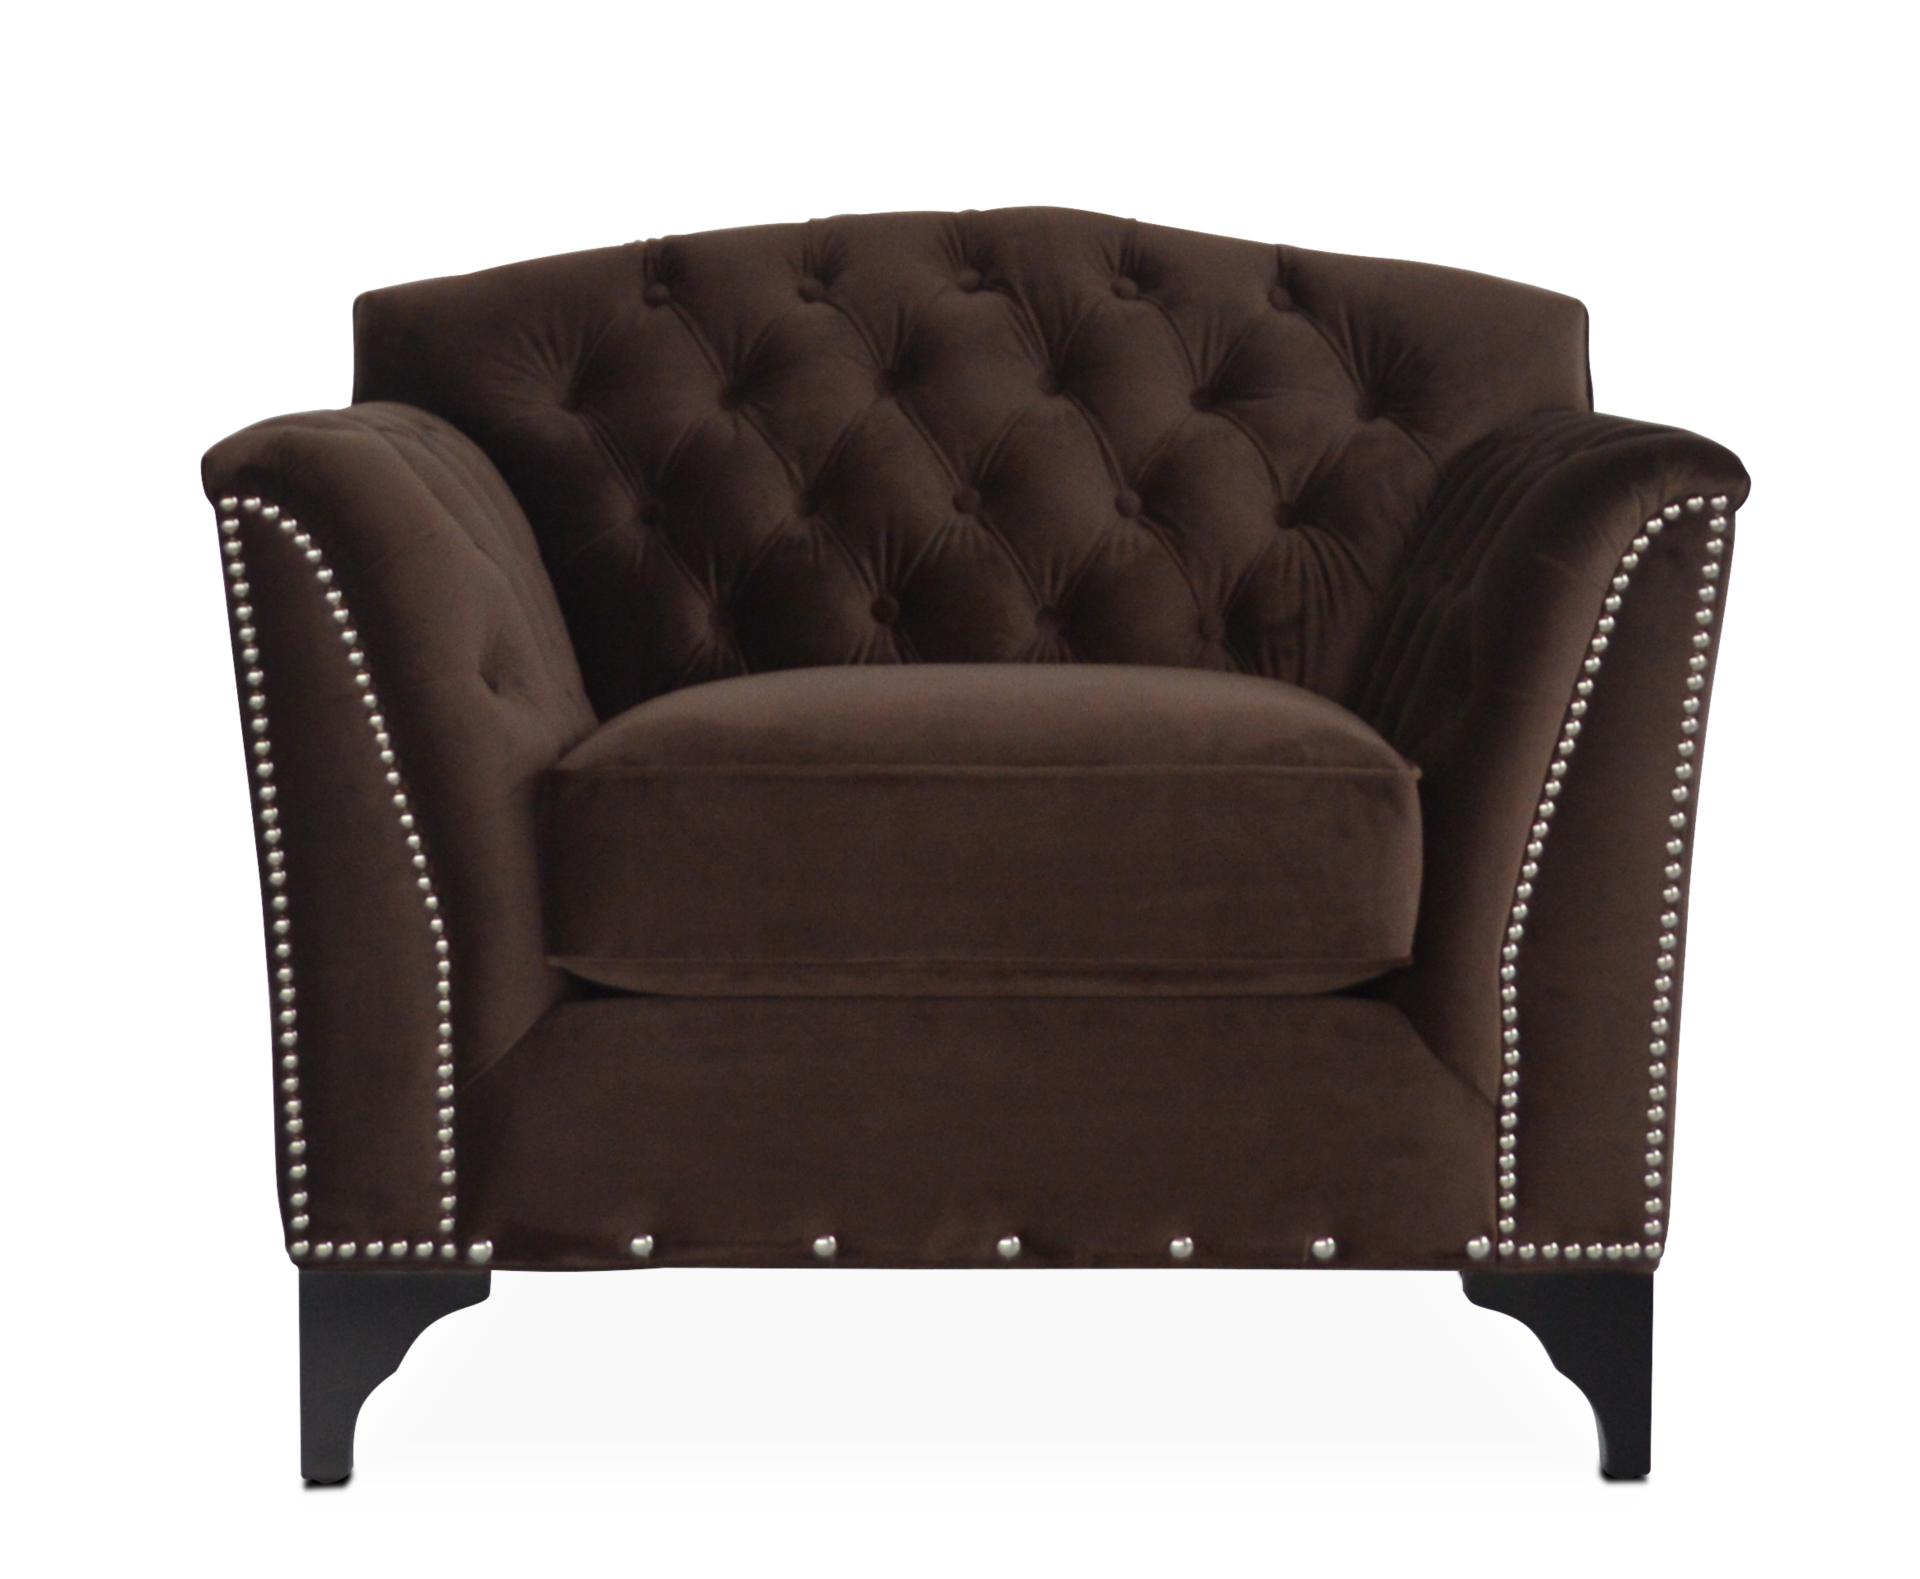 Priscilla Accent Chair   Brown